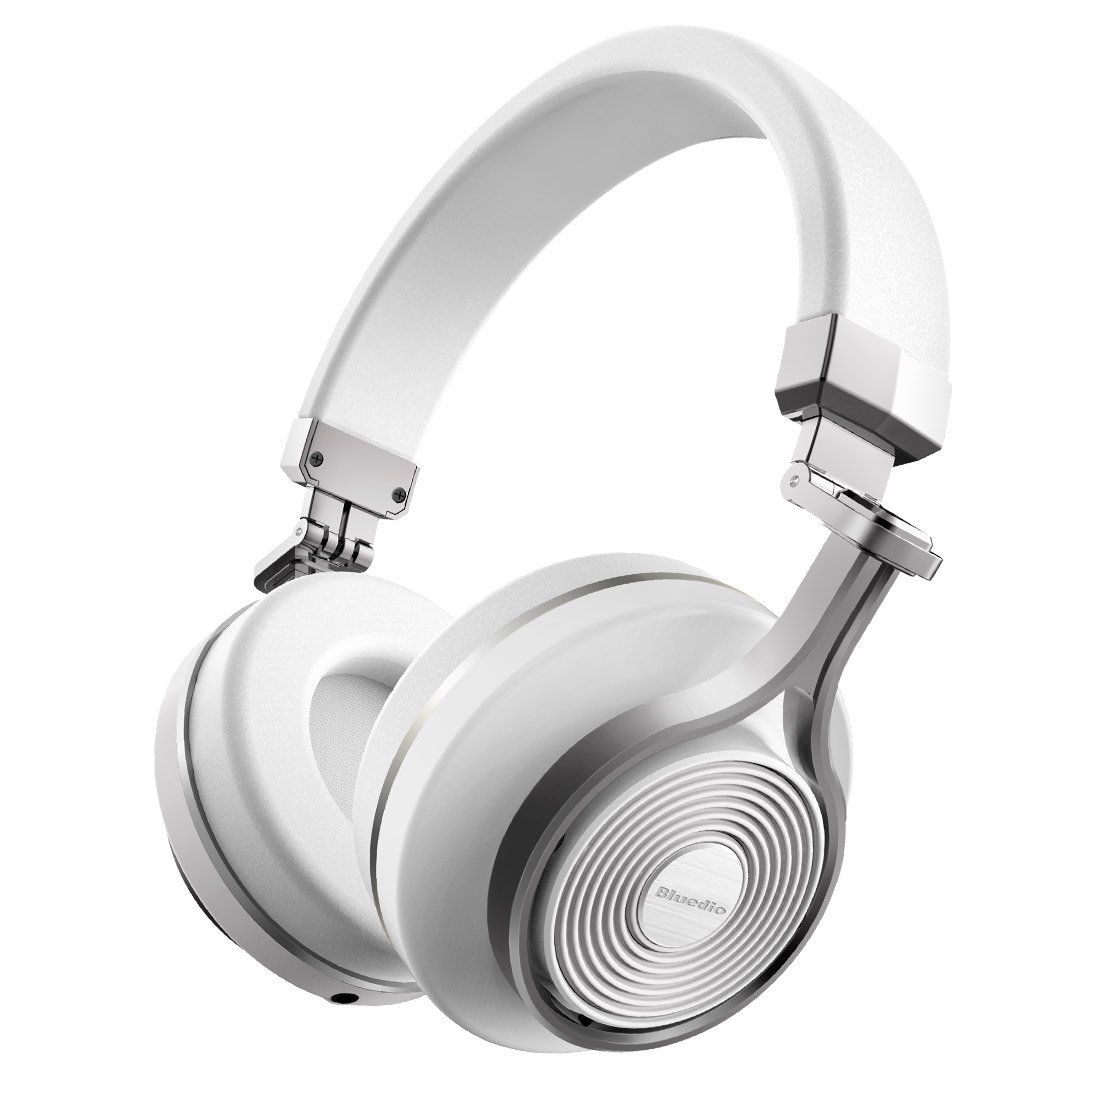 Bluedio T3 (Turbina 3) Cuffie Wireless Bluetooth 4.1 Stereo (Bianco)